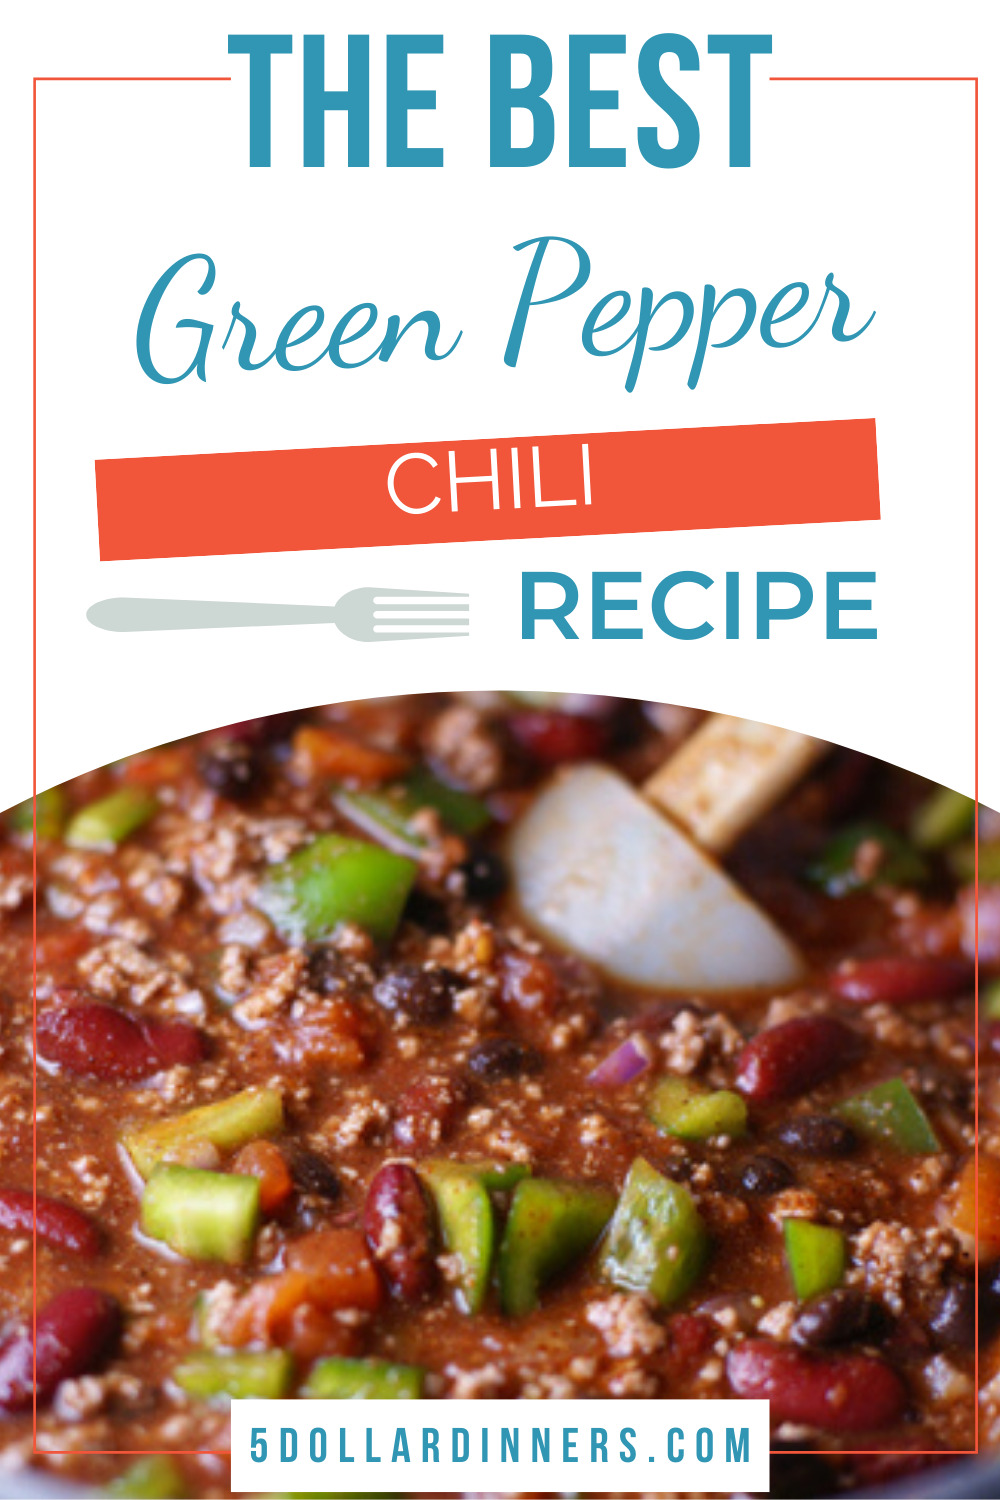 Green Pepper Chili 5 Dinners Recipes Meal Plans Coupons